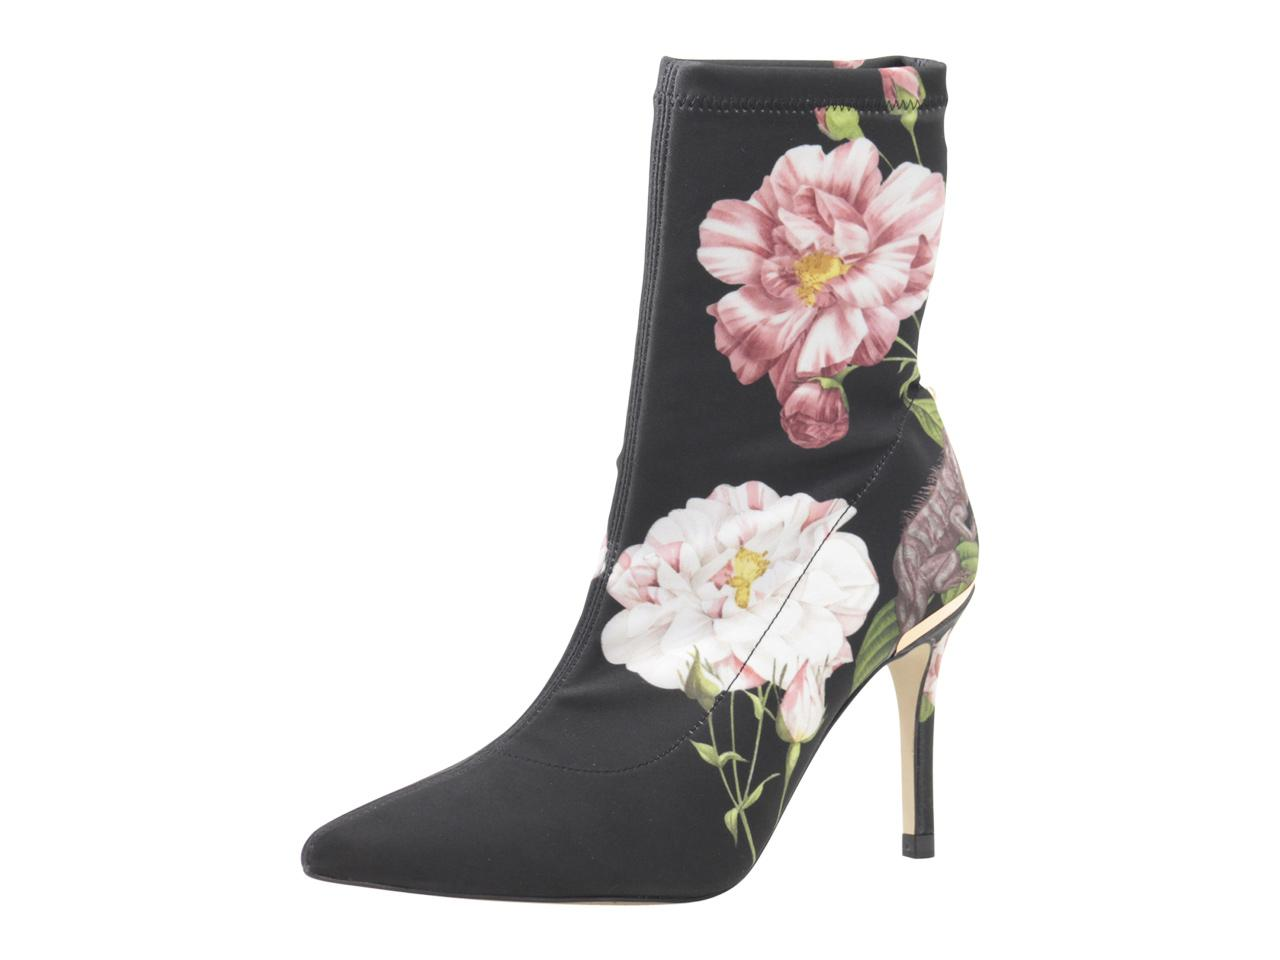 a5b5e23a692fe5 Ted Baker Women s Elzbet Heeled Boots Shoes